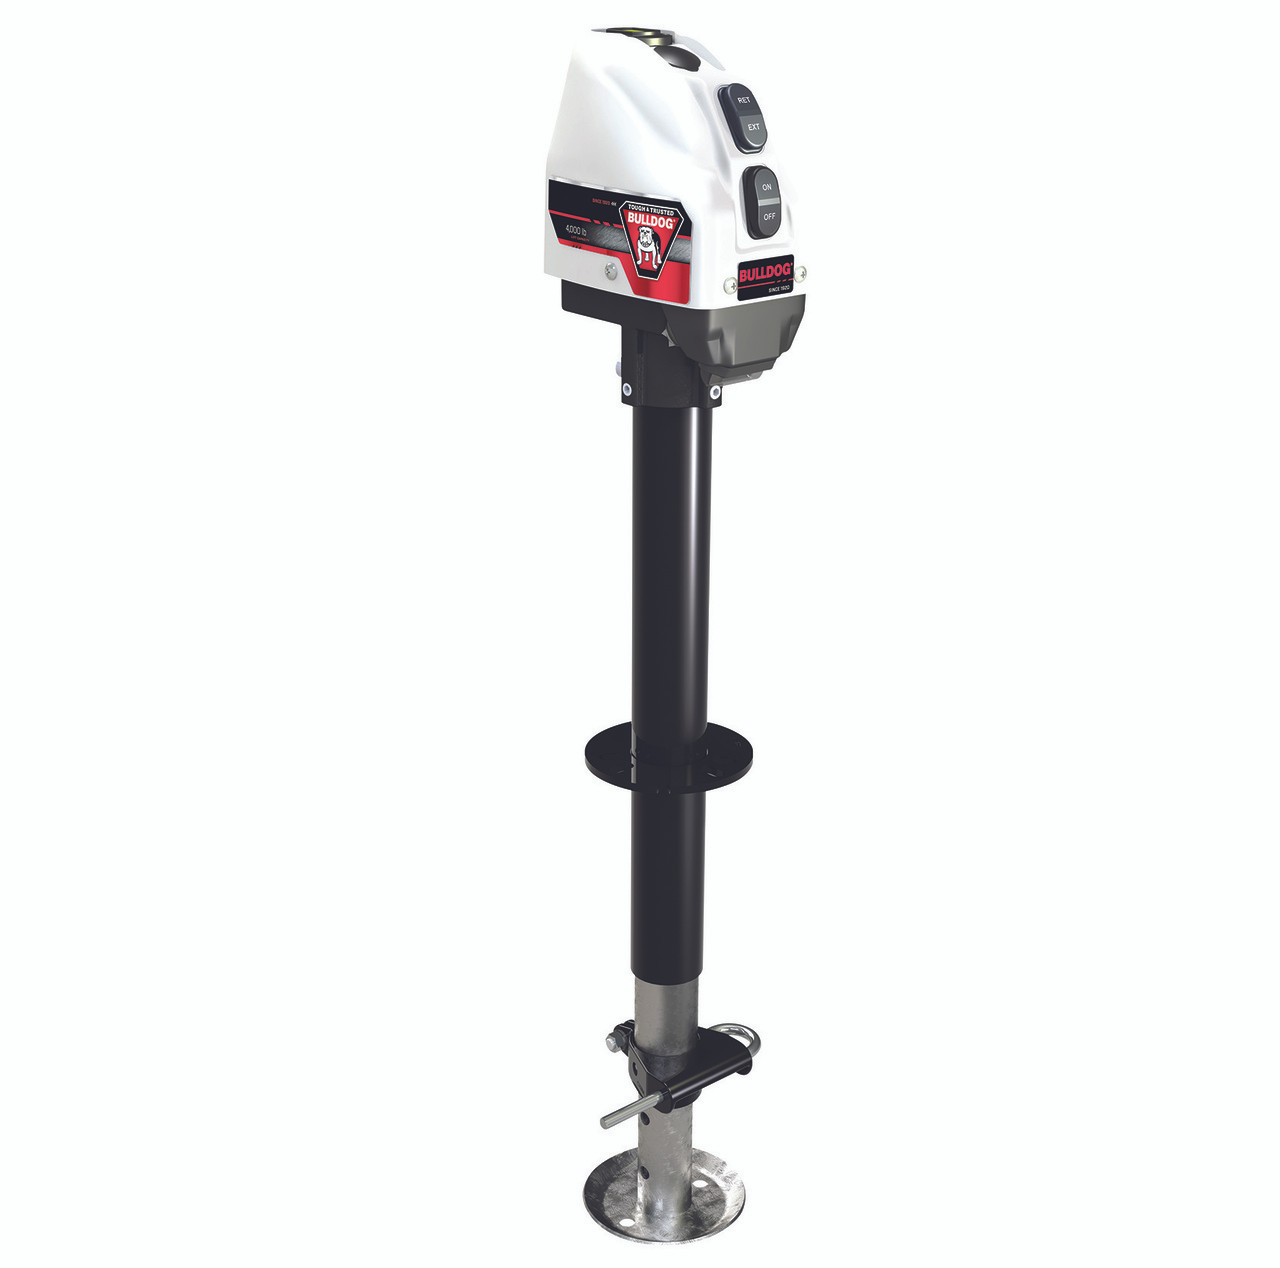 500200 --- BULLDOG A-Frame RV Power Jack - 4,000 lb Capacity - Croft ...